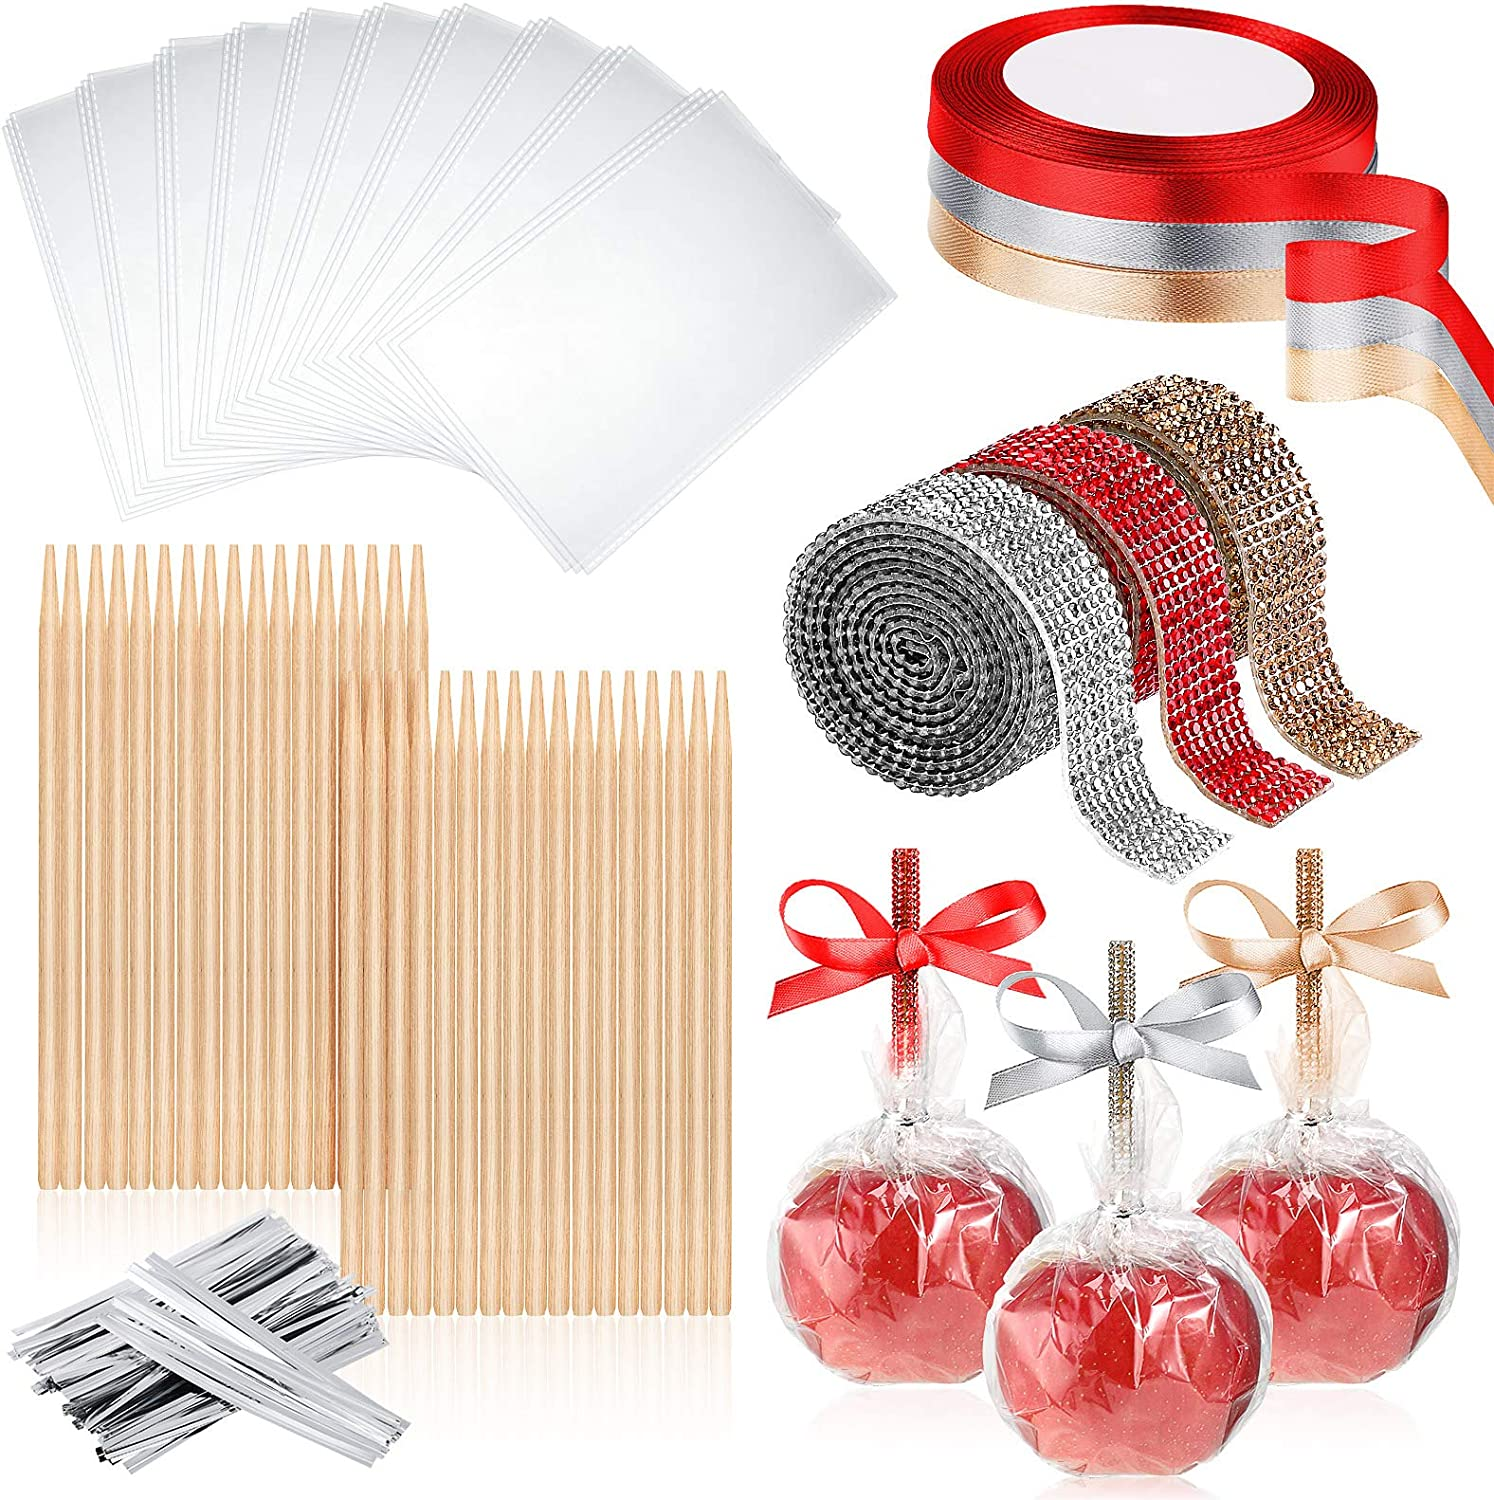 166 Pieces Bamboo Sticks Set 30 Pieces 5.5 Inch Candy Fruit Skewer Sticks, 30 Pieces Candy Cellophane Treat Bags, 3 Rolls Bling Rhinestone Stickers, 3 Rolls Satin Ribbon and Silver Twist Ties